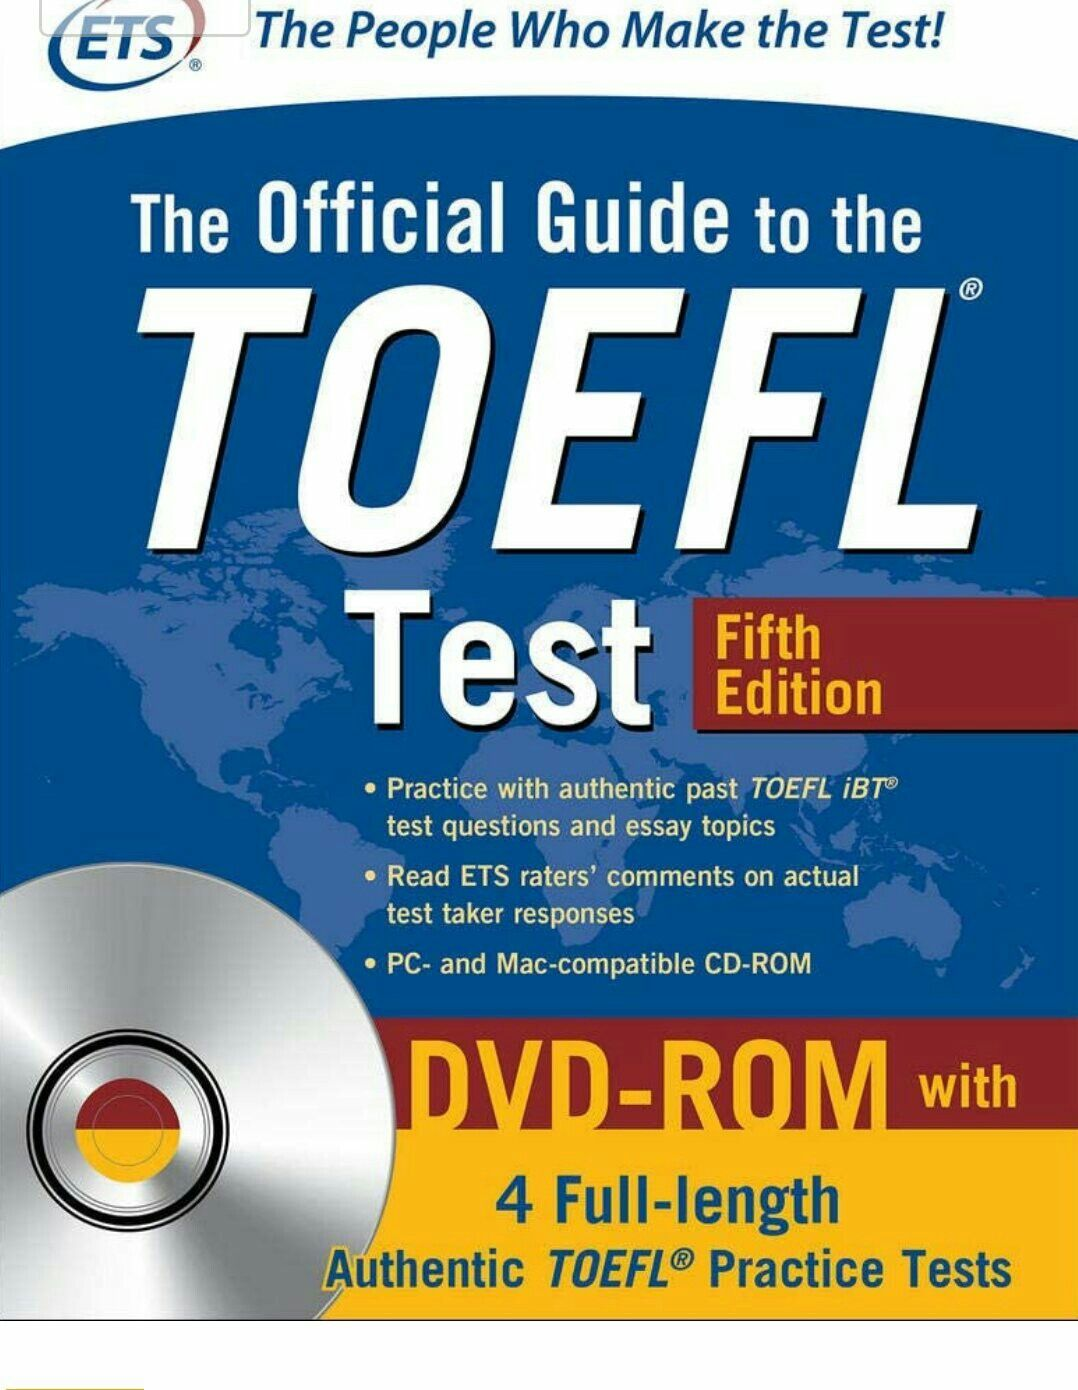 The Official Guide To The Toefl Test With Dvd Rom Fifth Edition In 2020 Toefl Test Toefl Toefl Practice